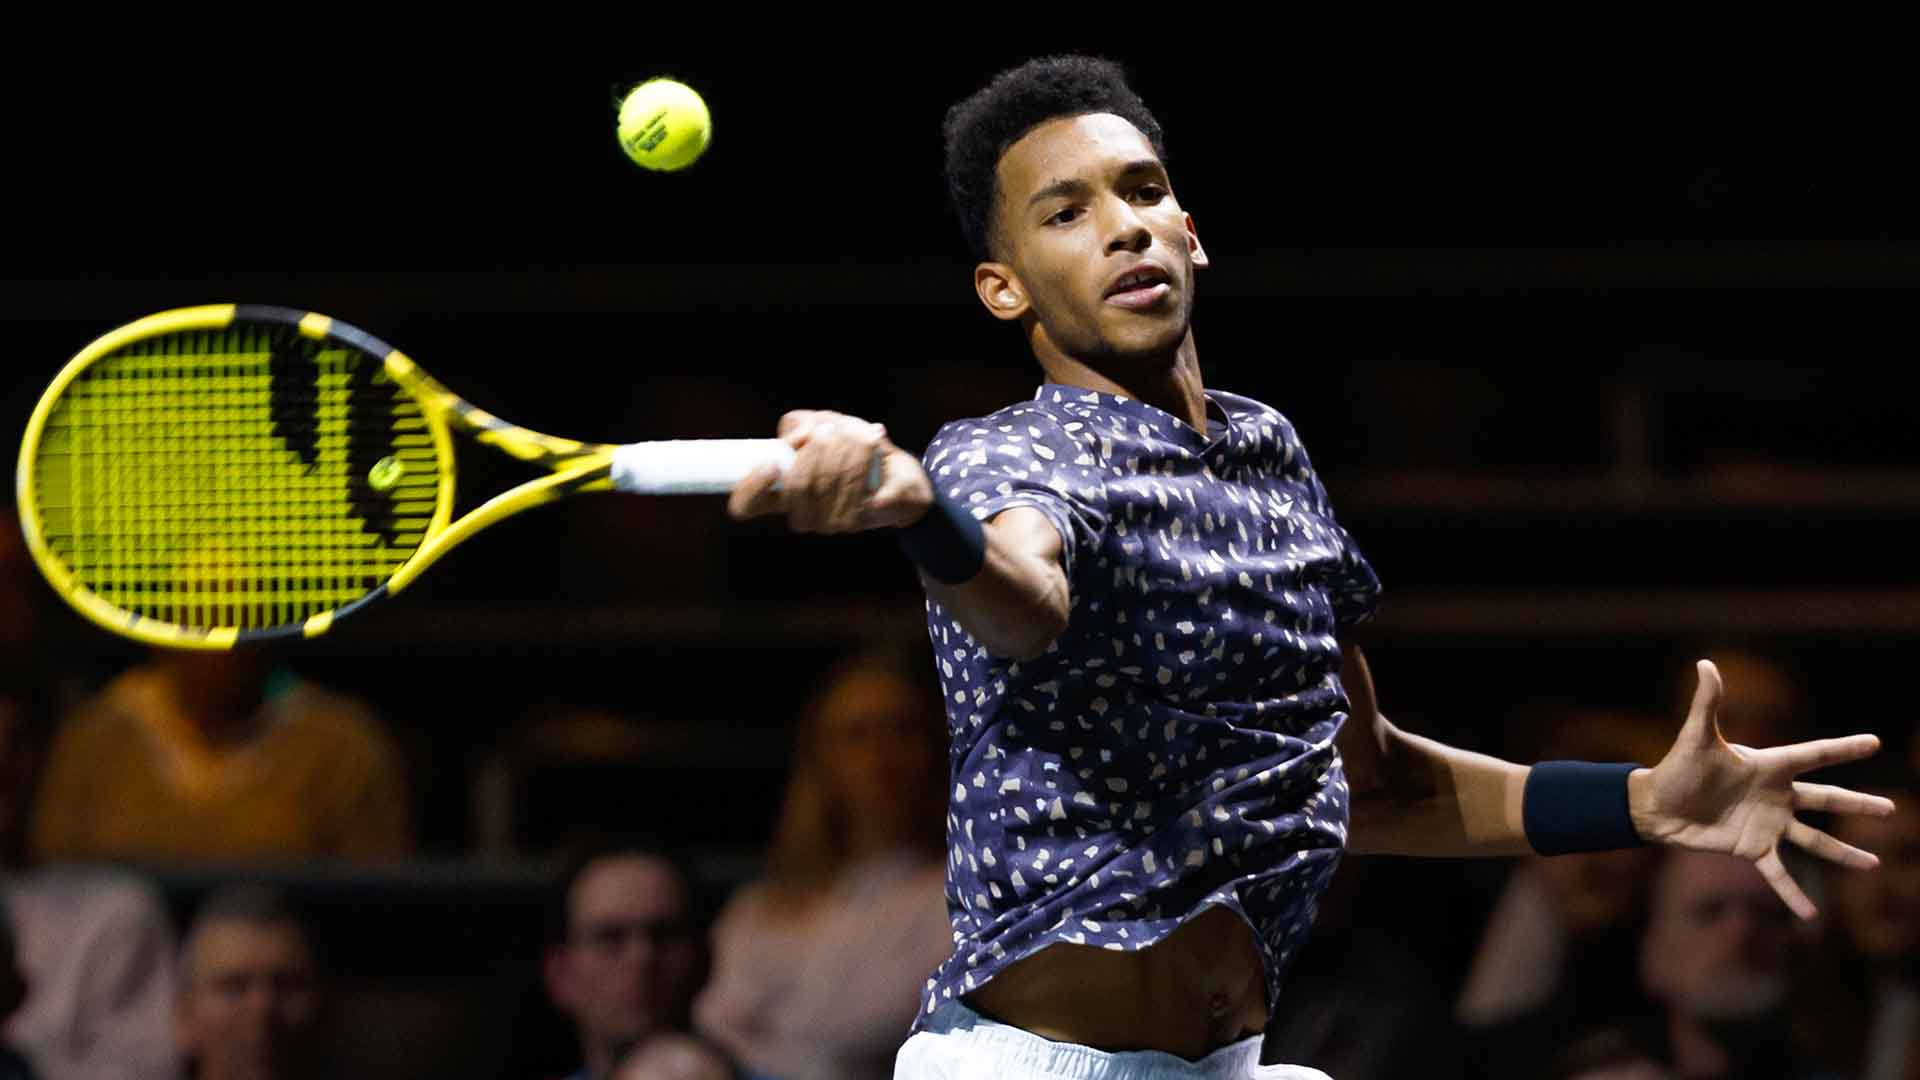 auger-aliassime-rotterdam-2020-saturday